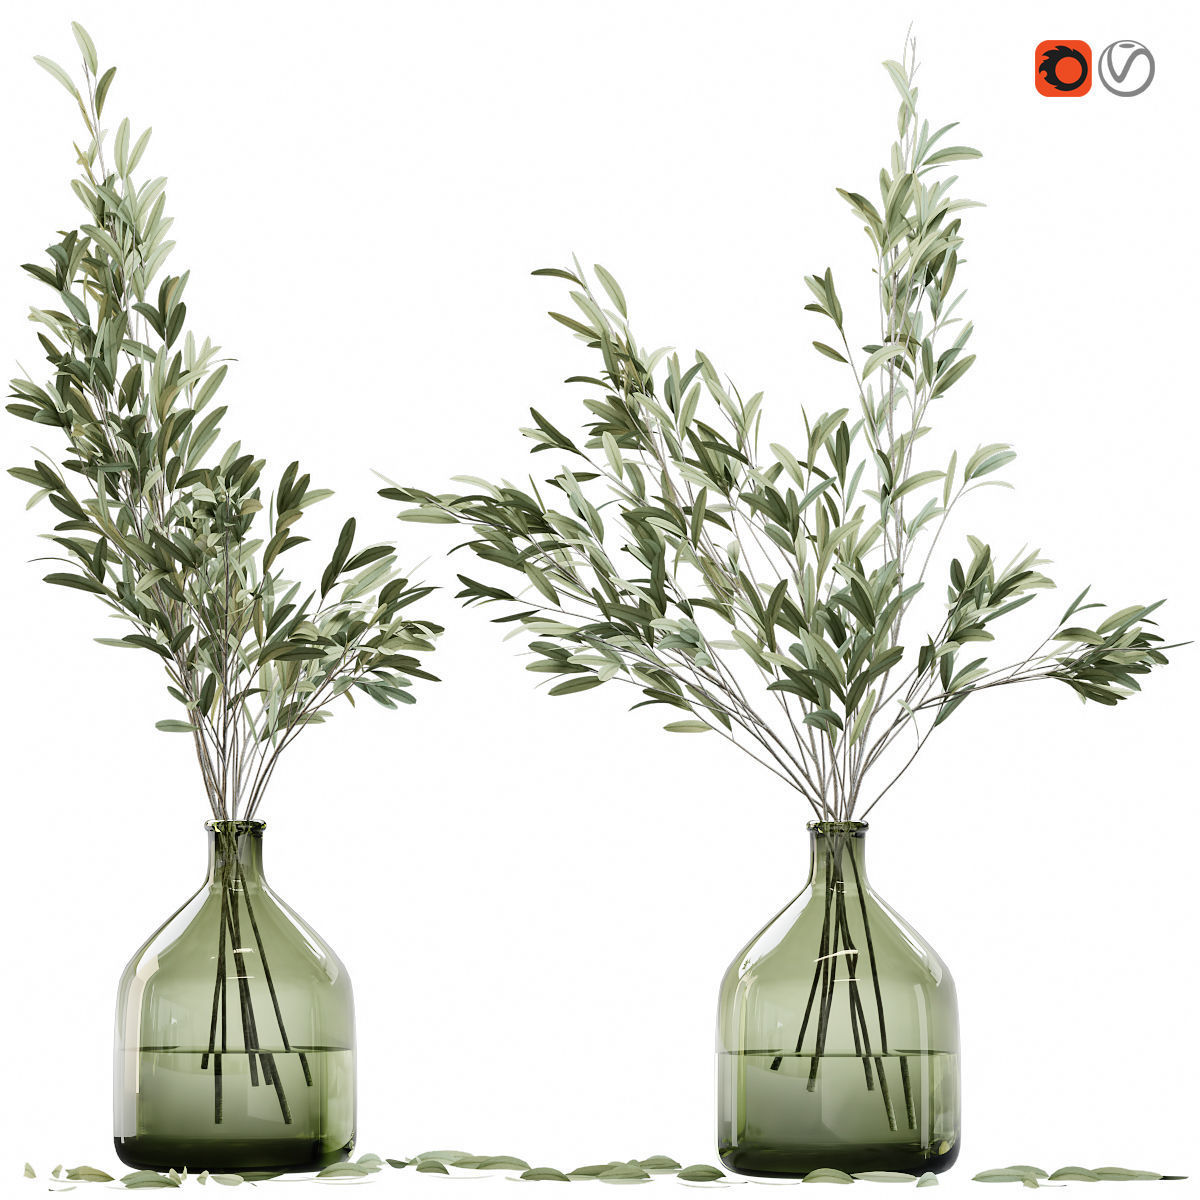 Olive stems in glass vase with water